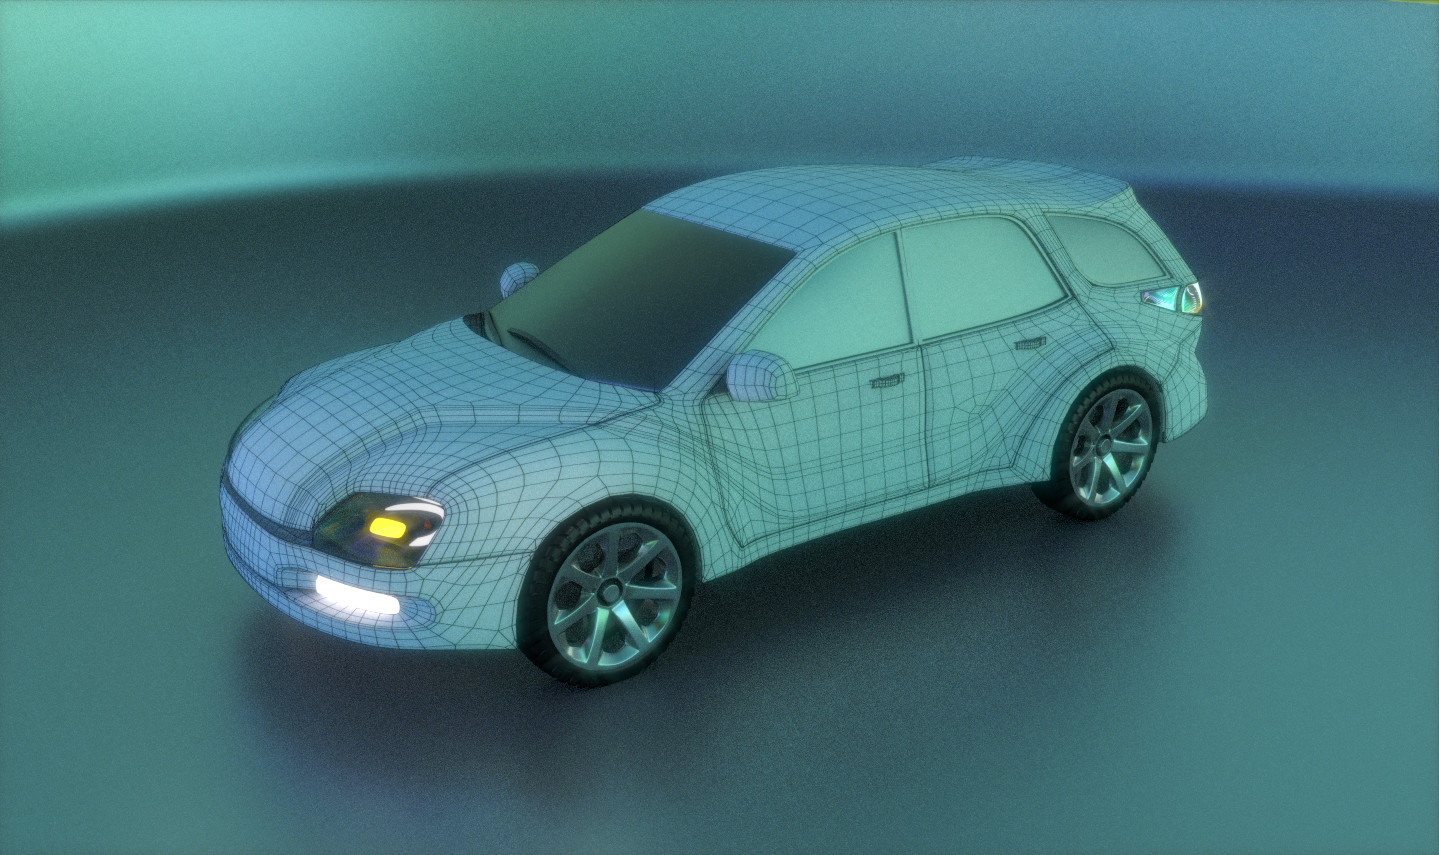 A wireframe render.